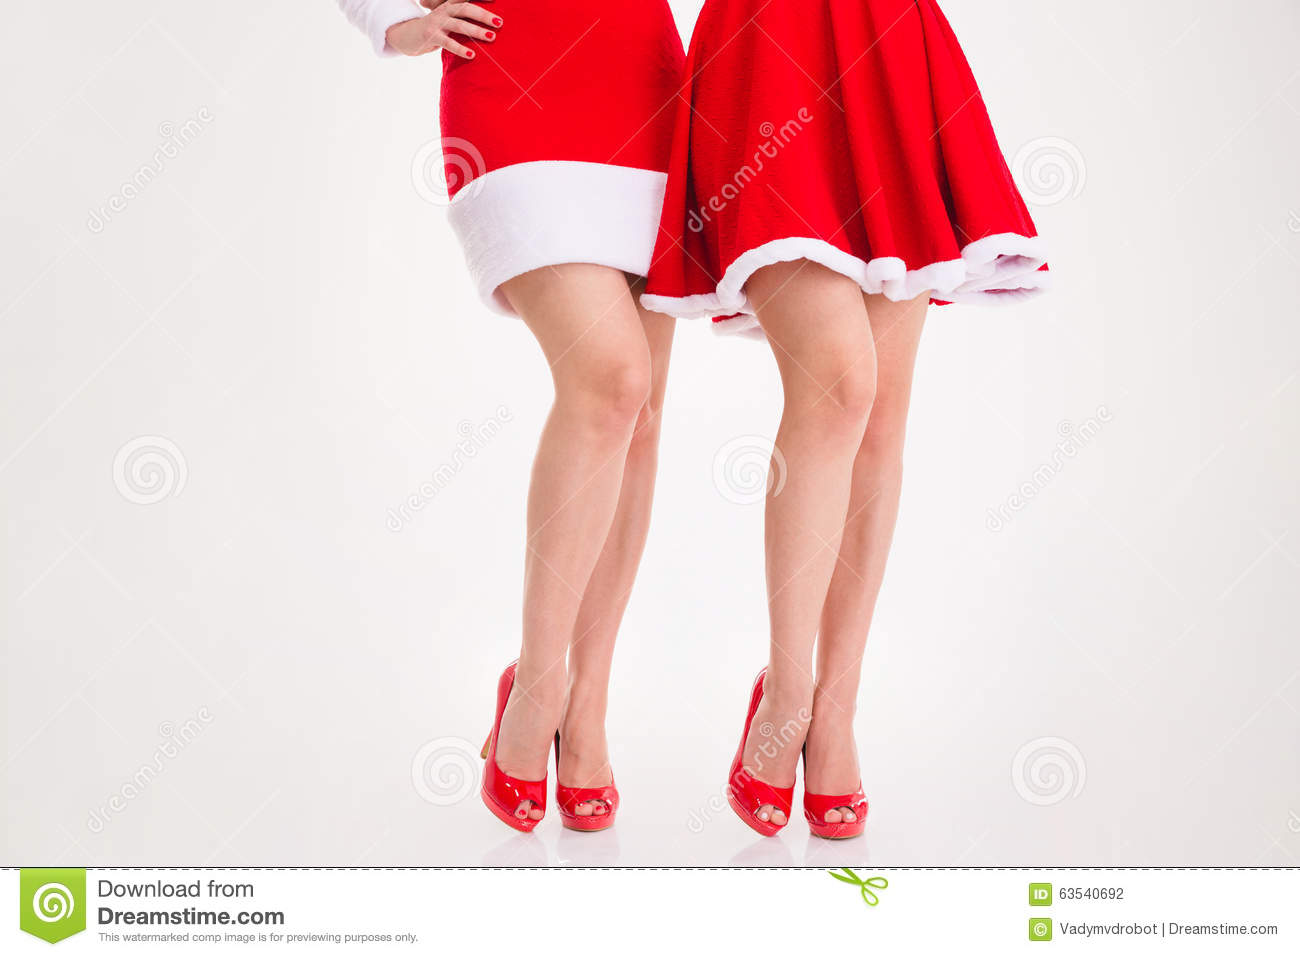 Beautiful legs of two young women in santa claus dresses and red shoes over  white background c36104d0e8